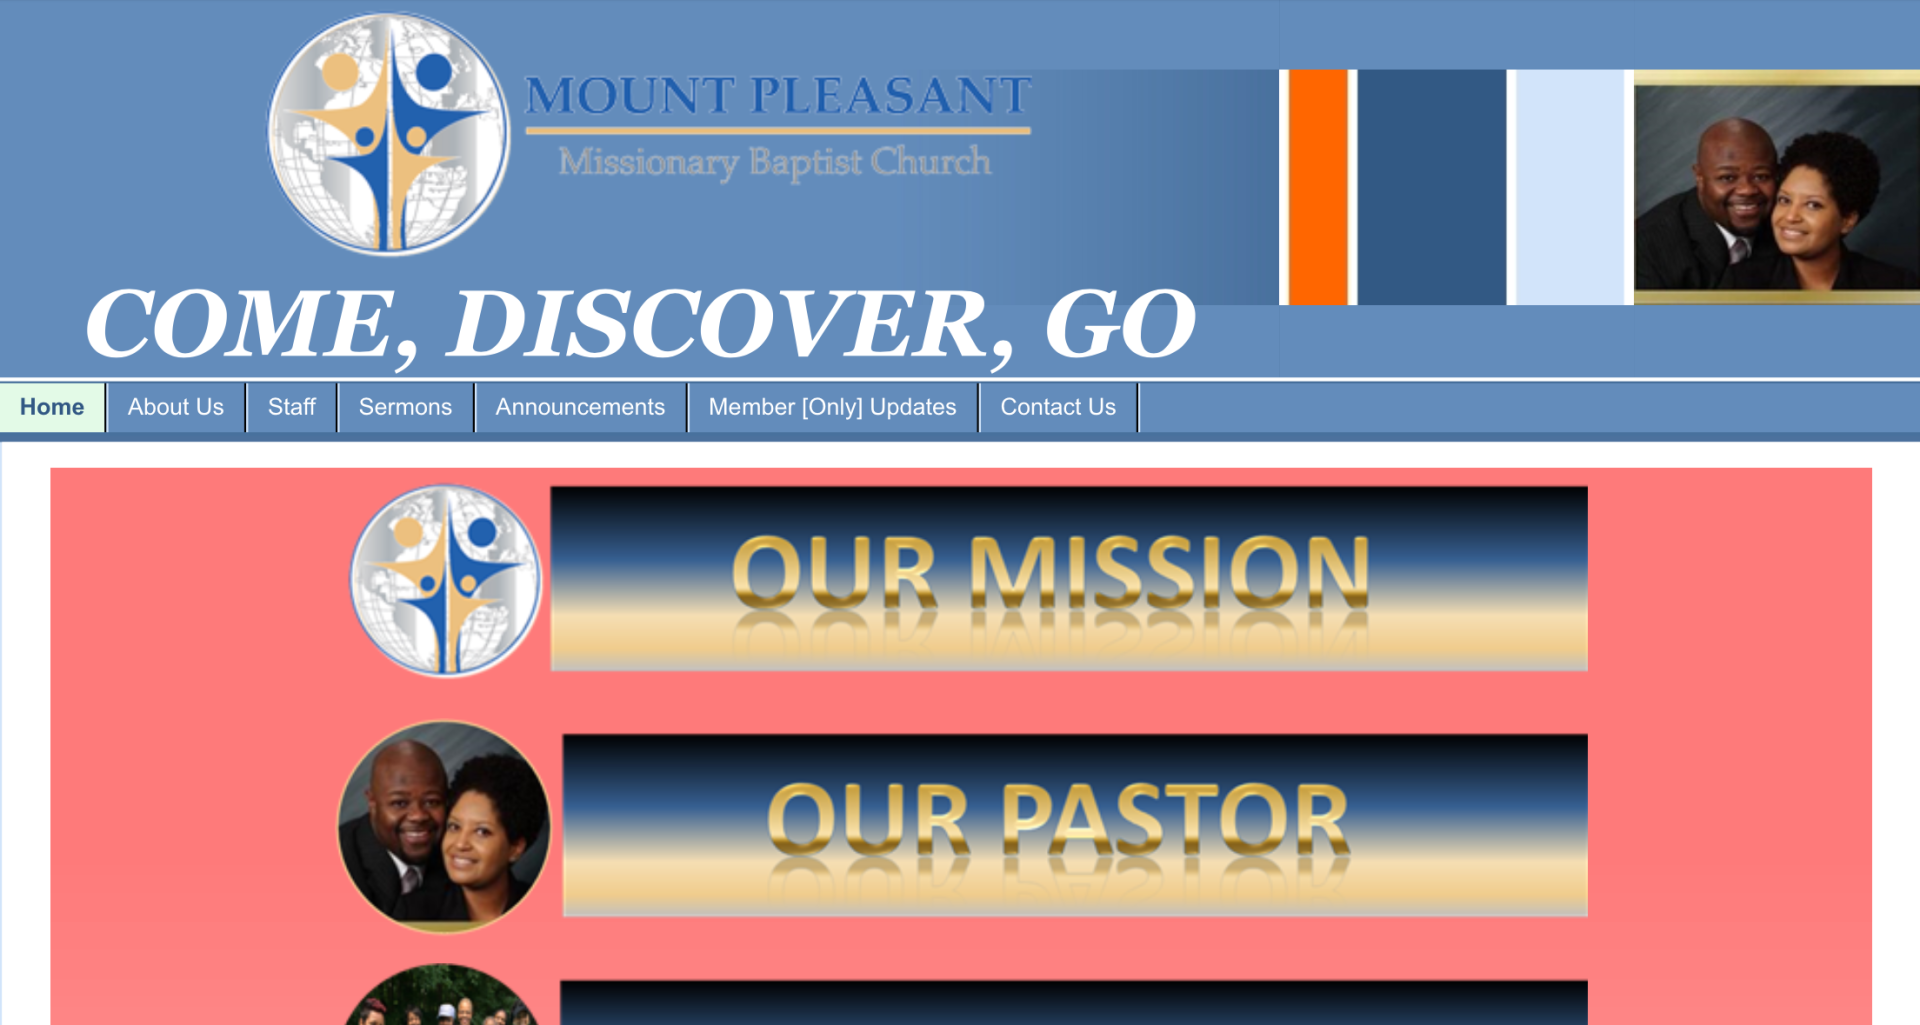 MOUNT PLEASANT MISSIONARY BAPTIST CHURCH